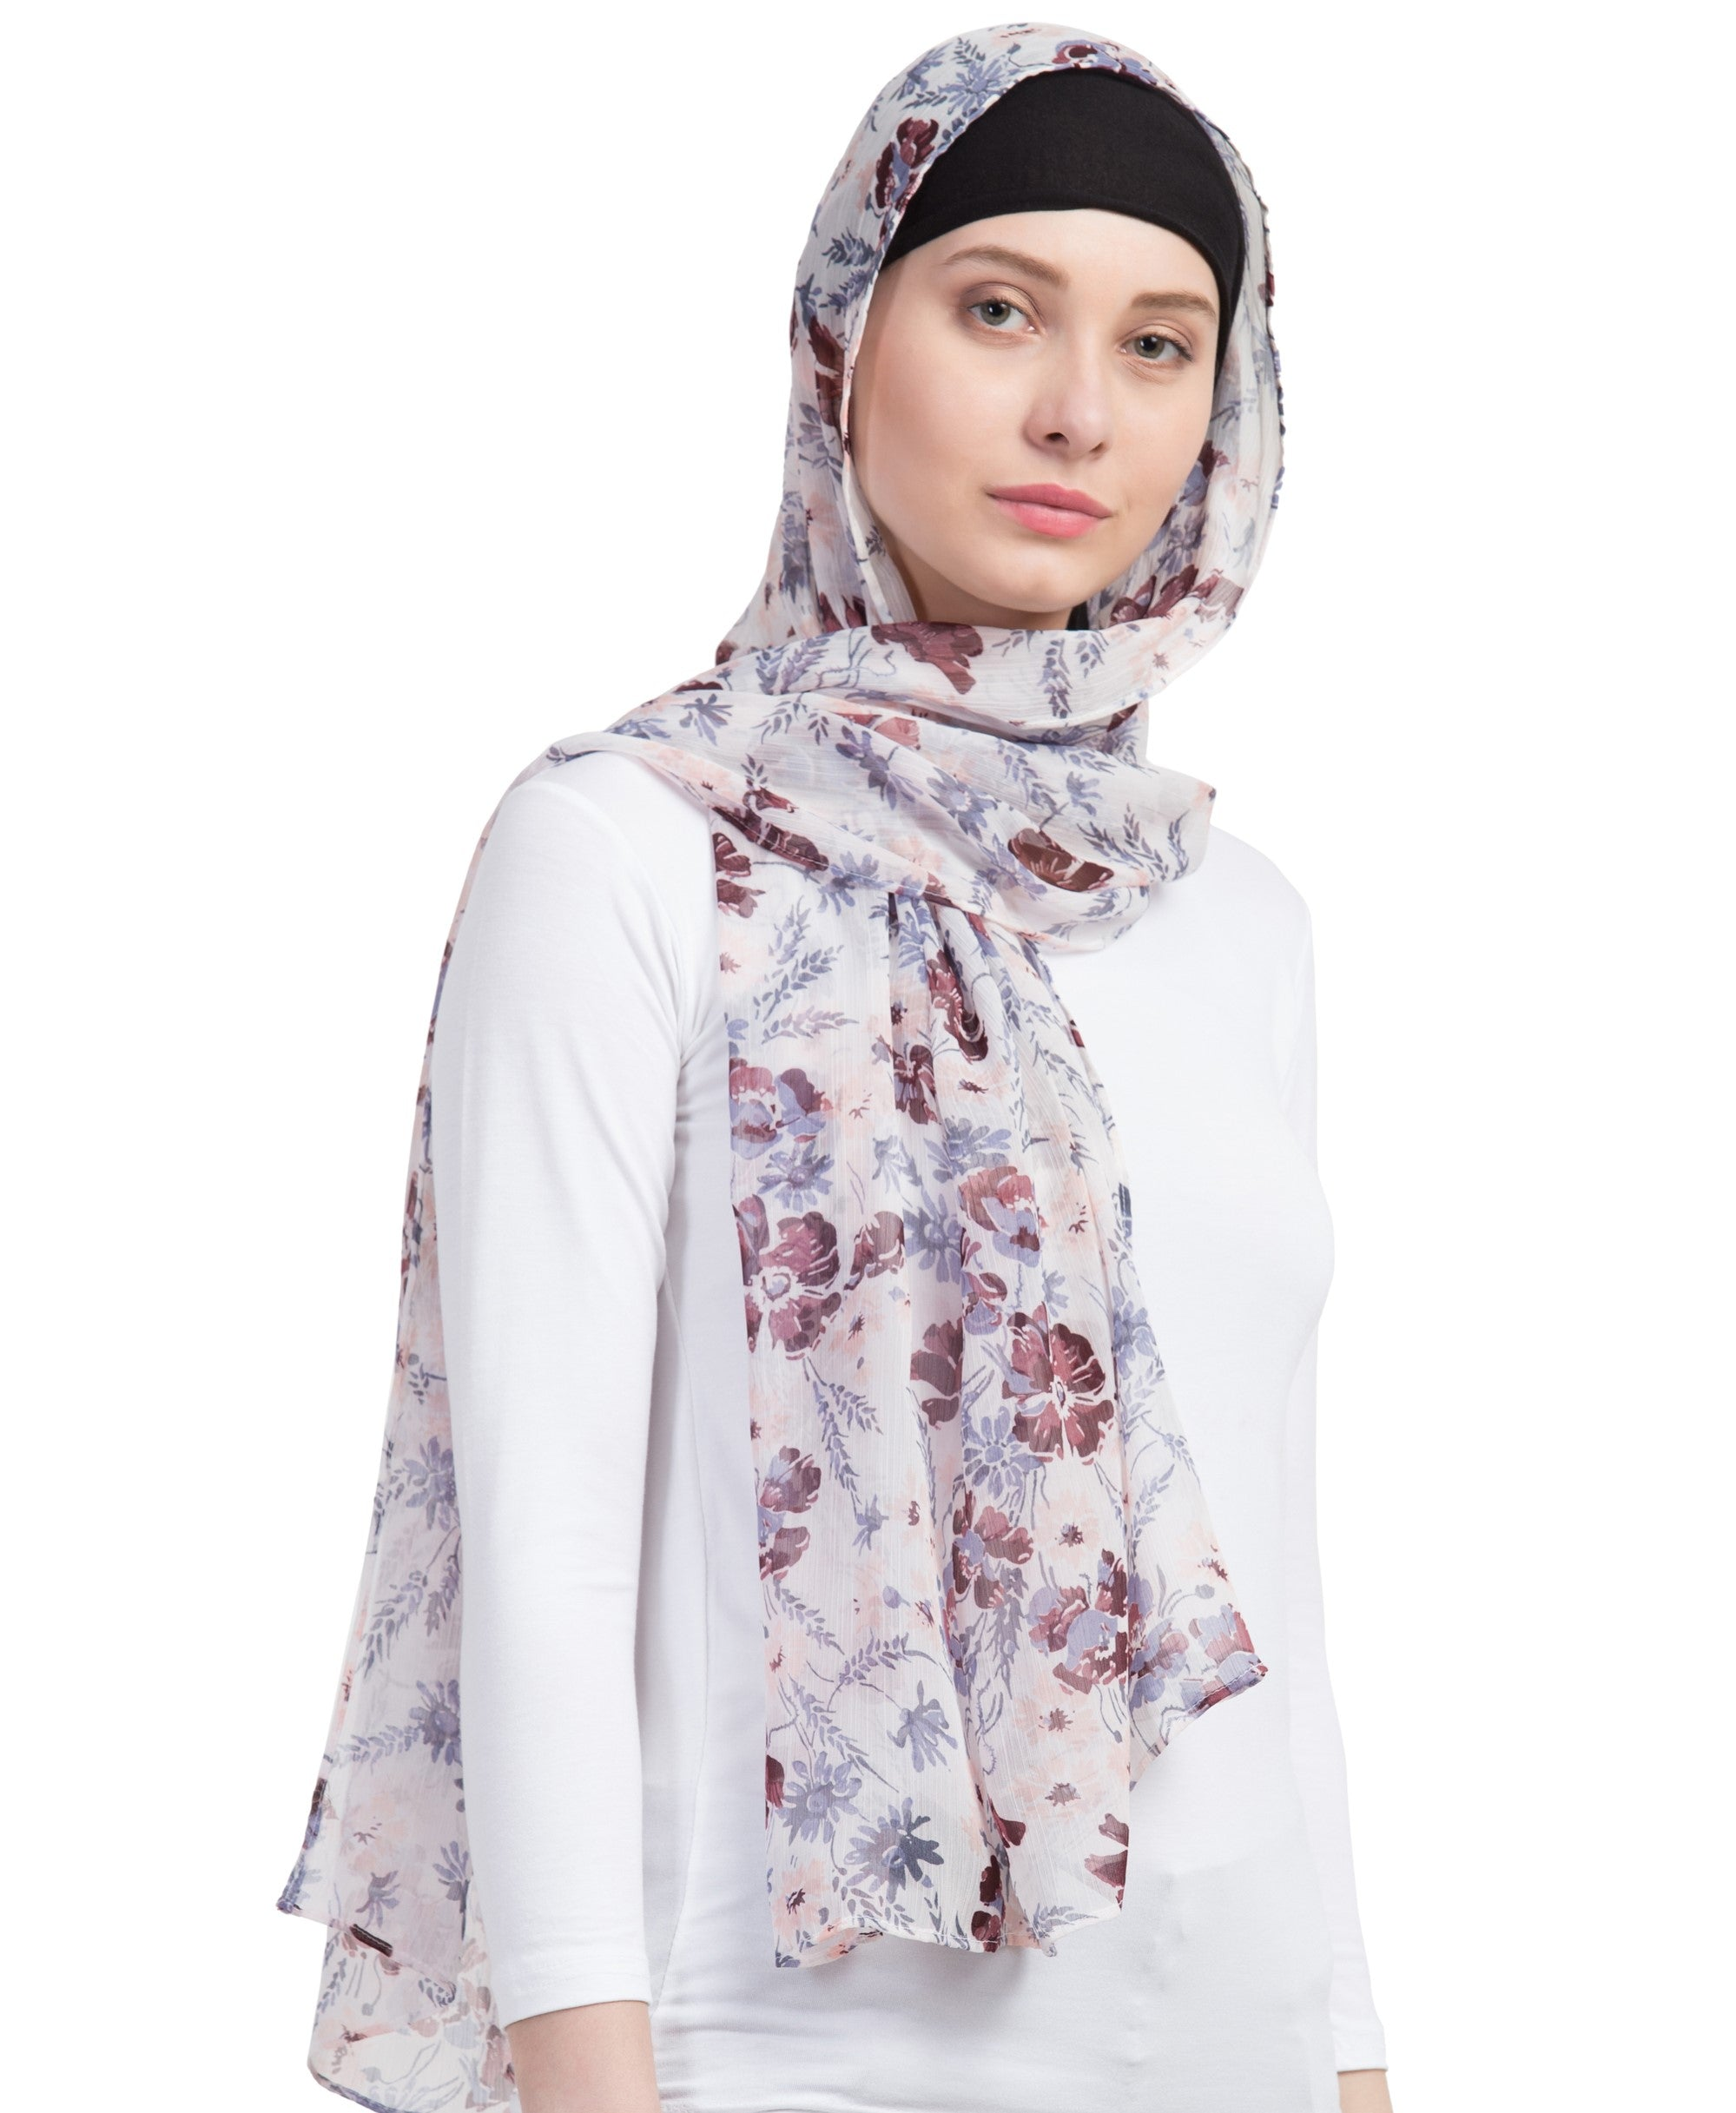 Ruqsar The Peachy Crush Headscarf